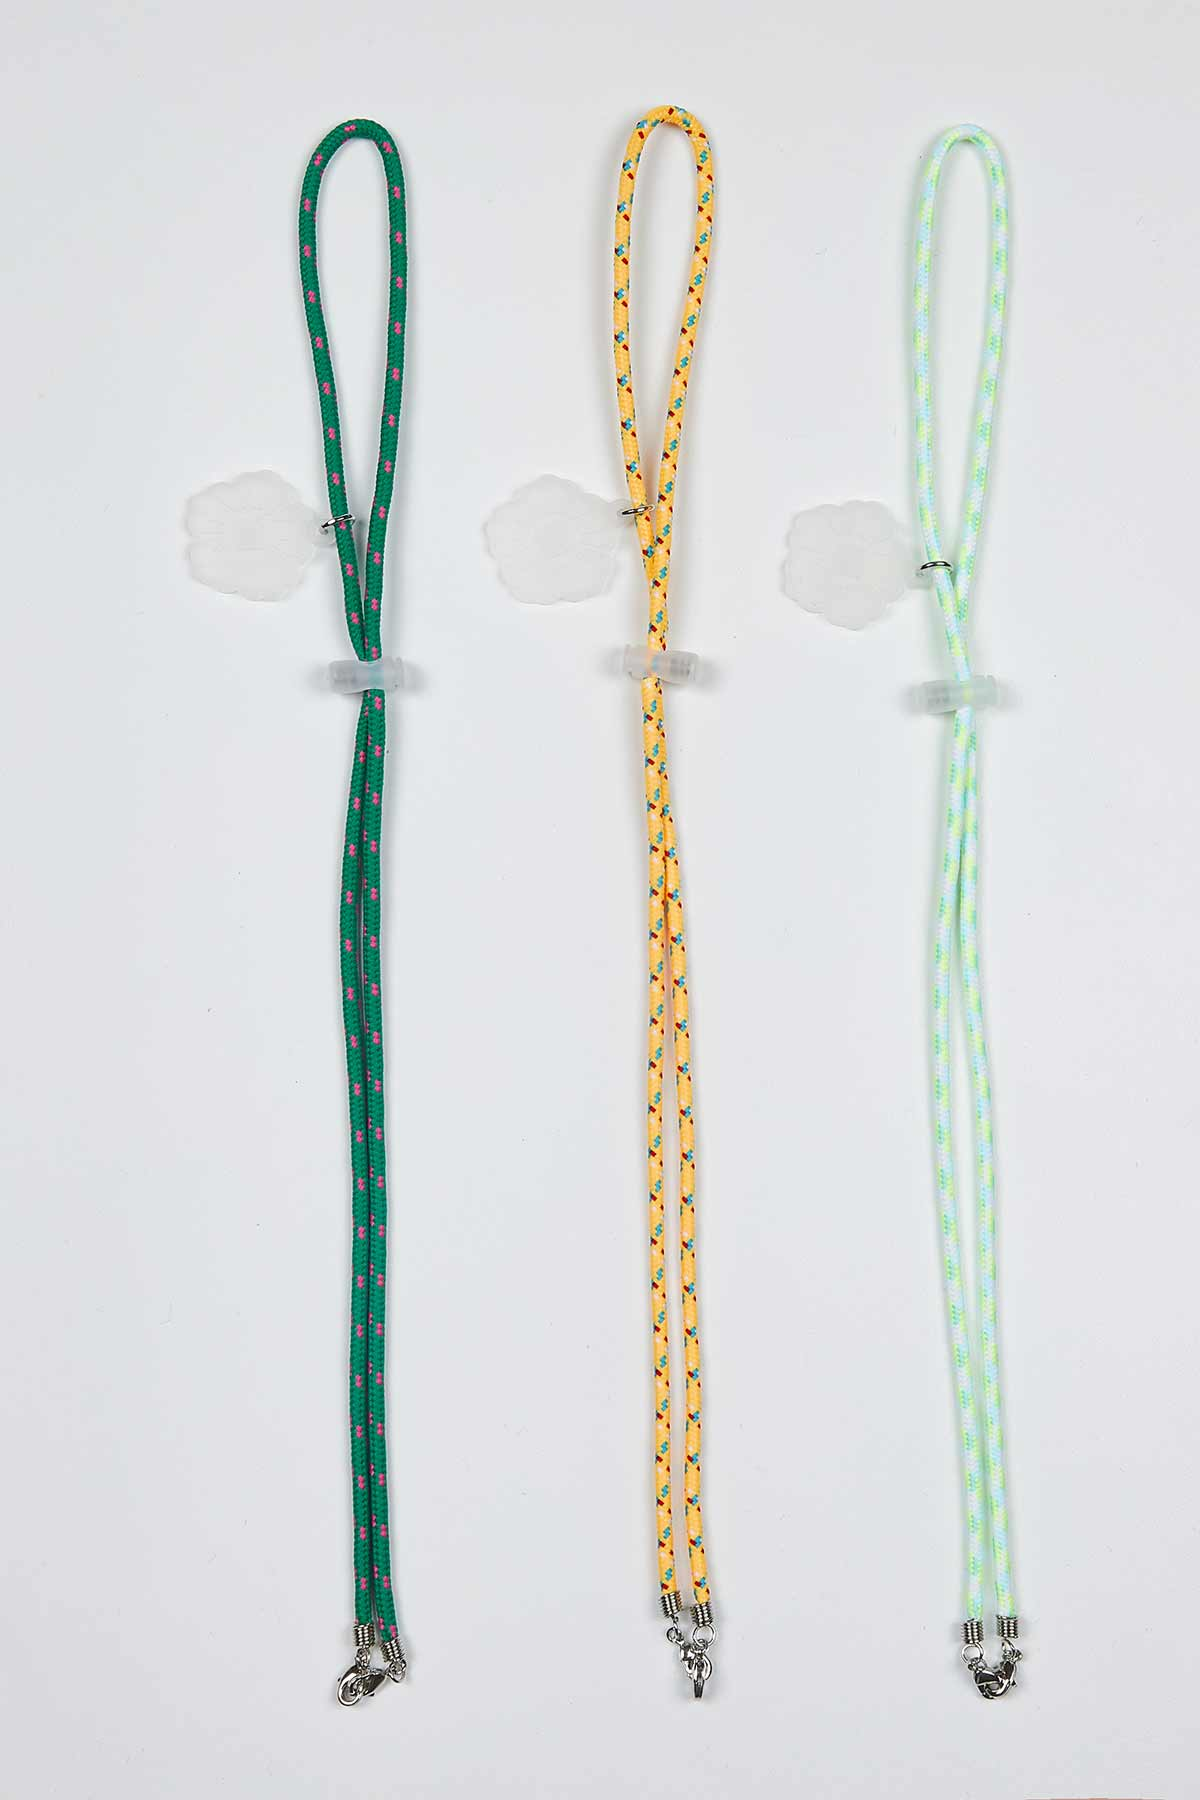 S A T I V A Bungee Mask Cord 3-Pack